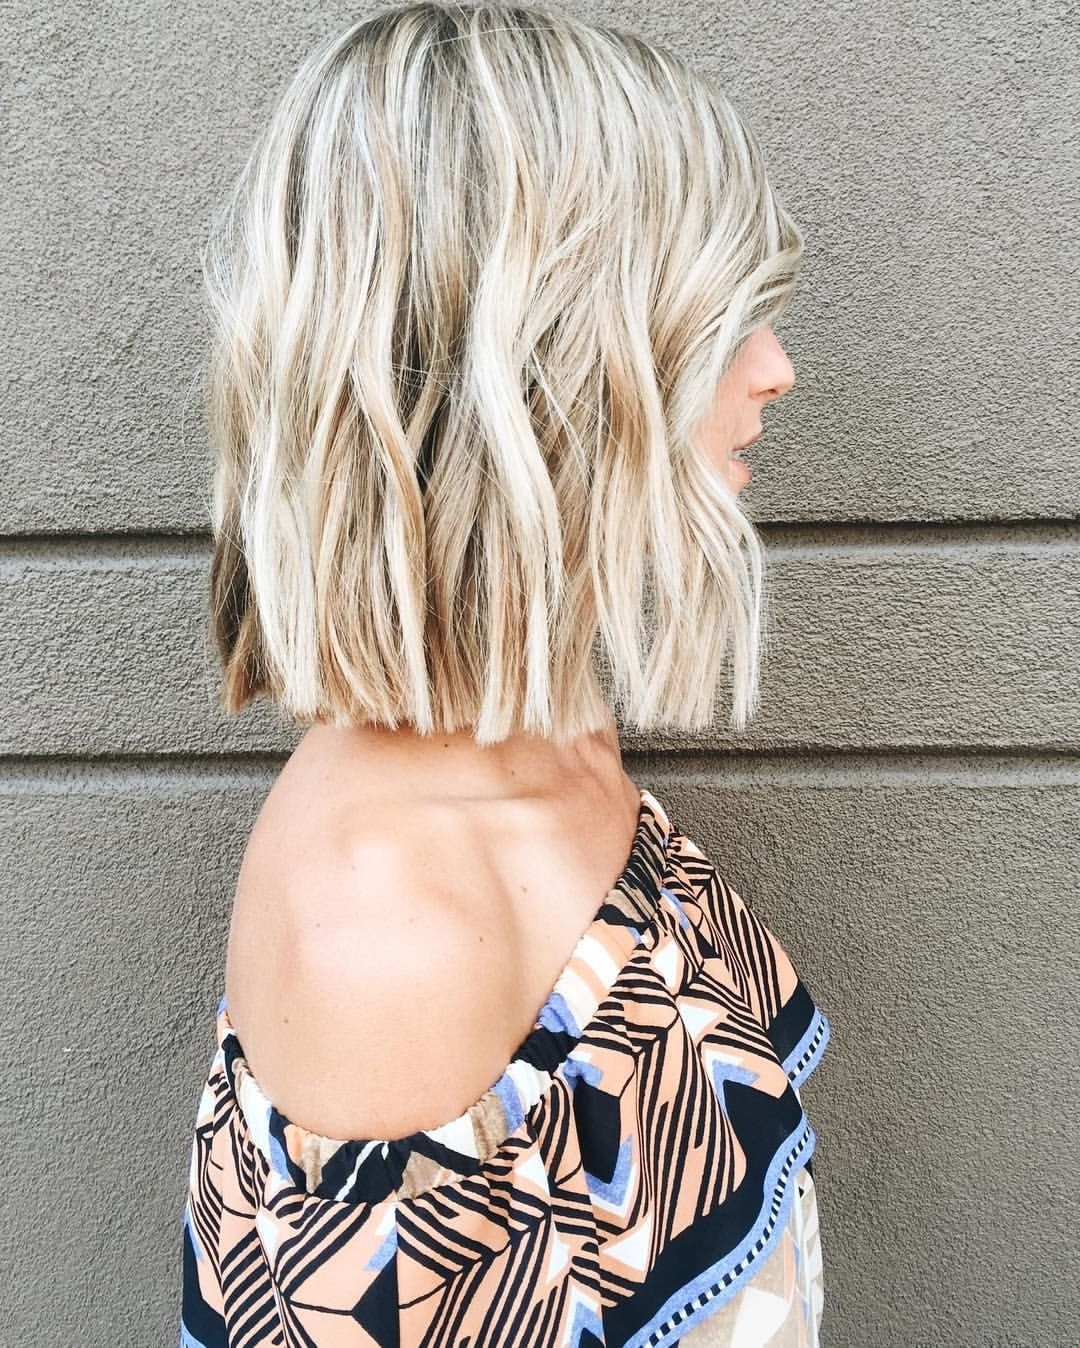 60 Gorgeous Blunt Cut Hairstyles – The Haircut That Works On In Preferred Blunt Cut White Gold Lob Blonde Hairstyles (View 6 of 20)